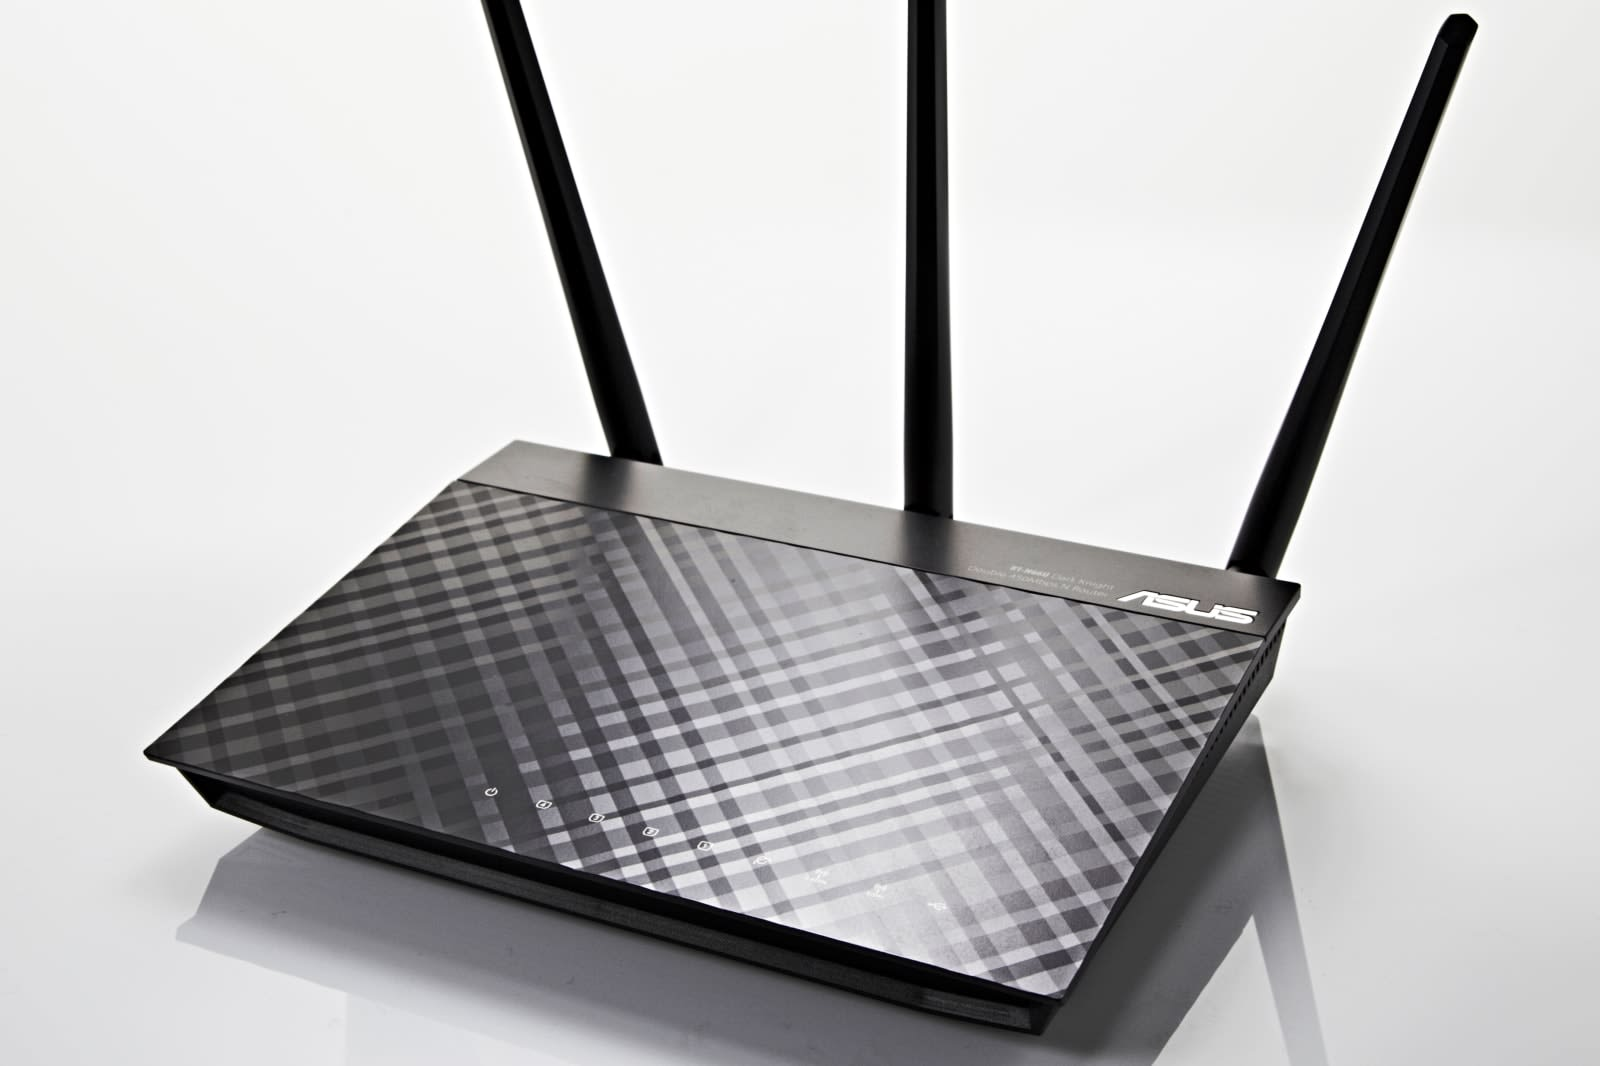 Data-stealing router malware bypasses web encryption